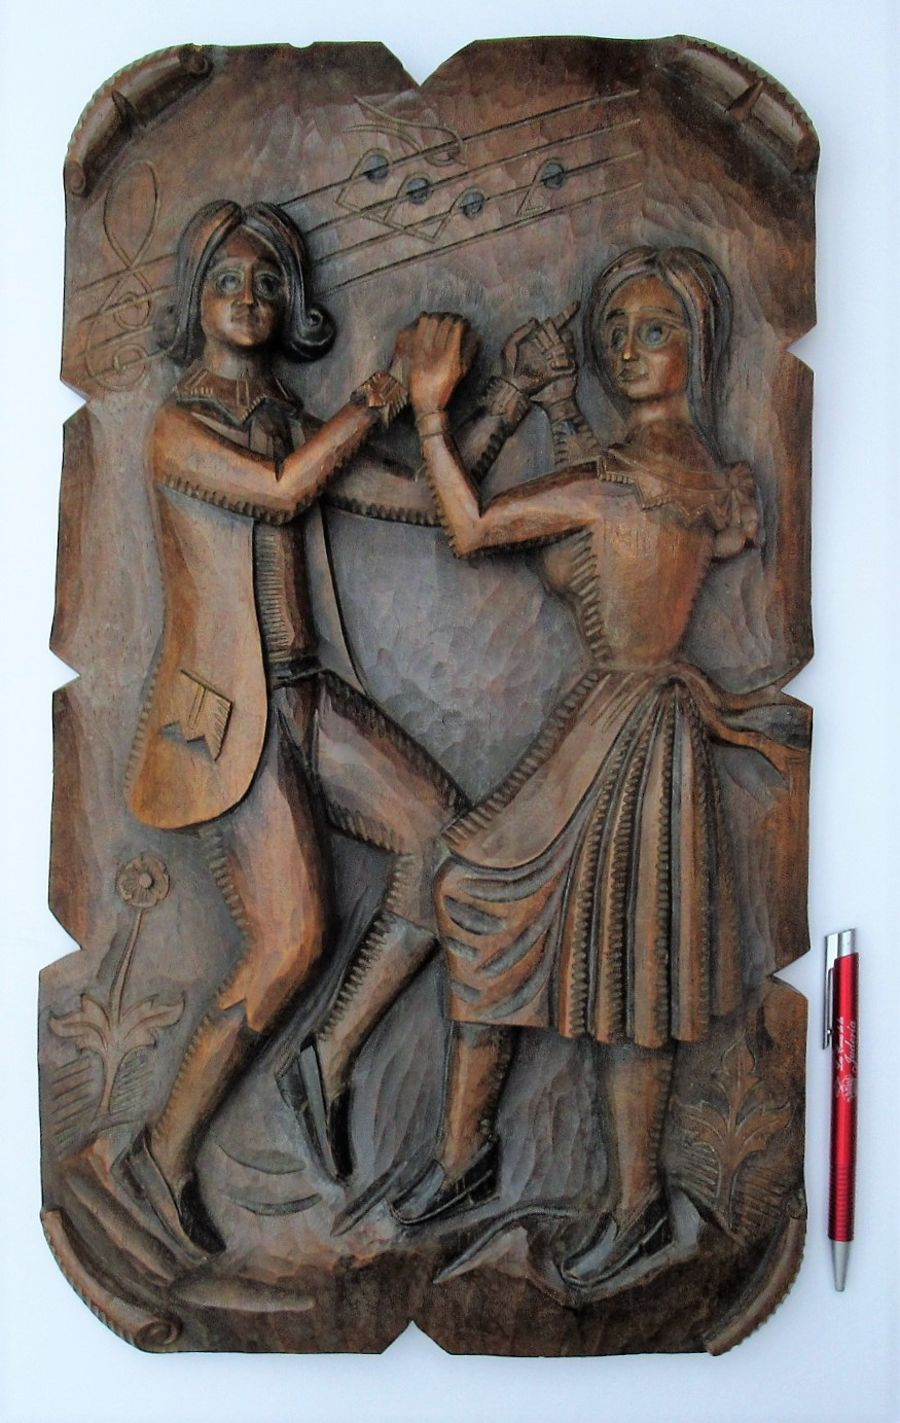 Carved early 20th century Tyrol region plaque with dancing couple